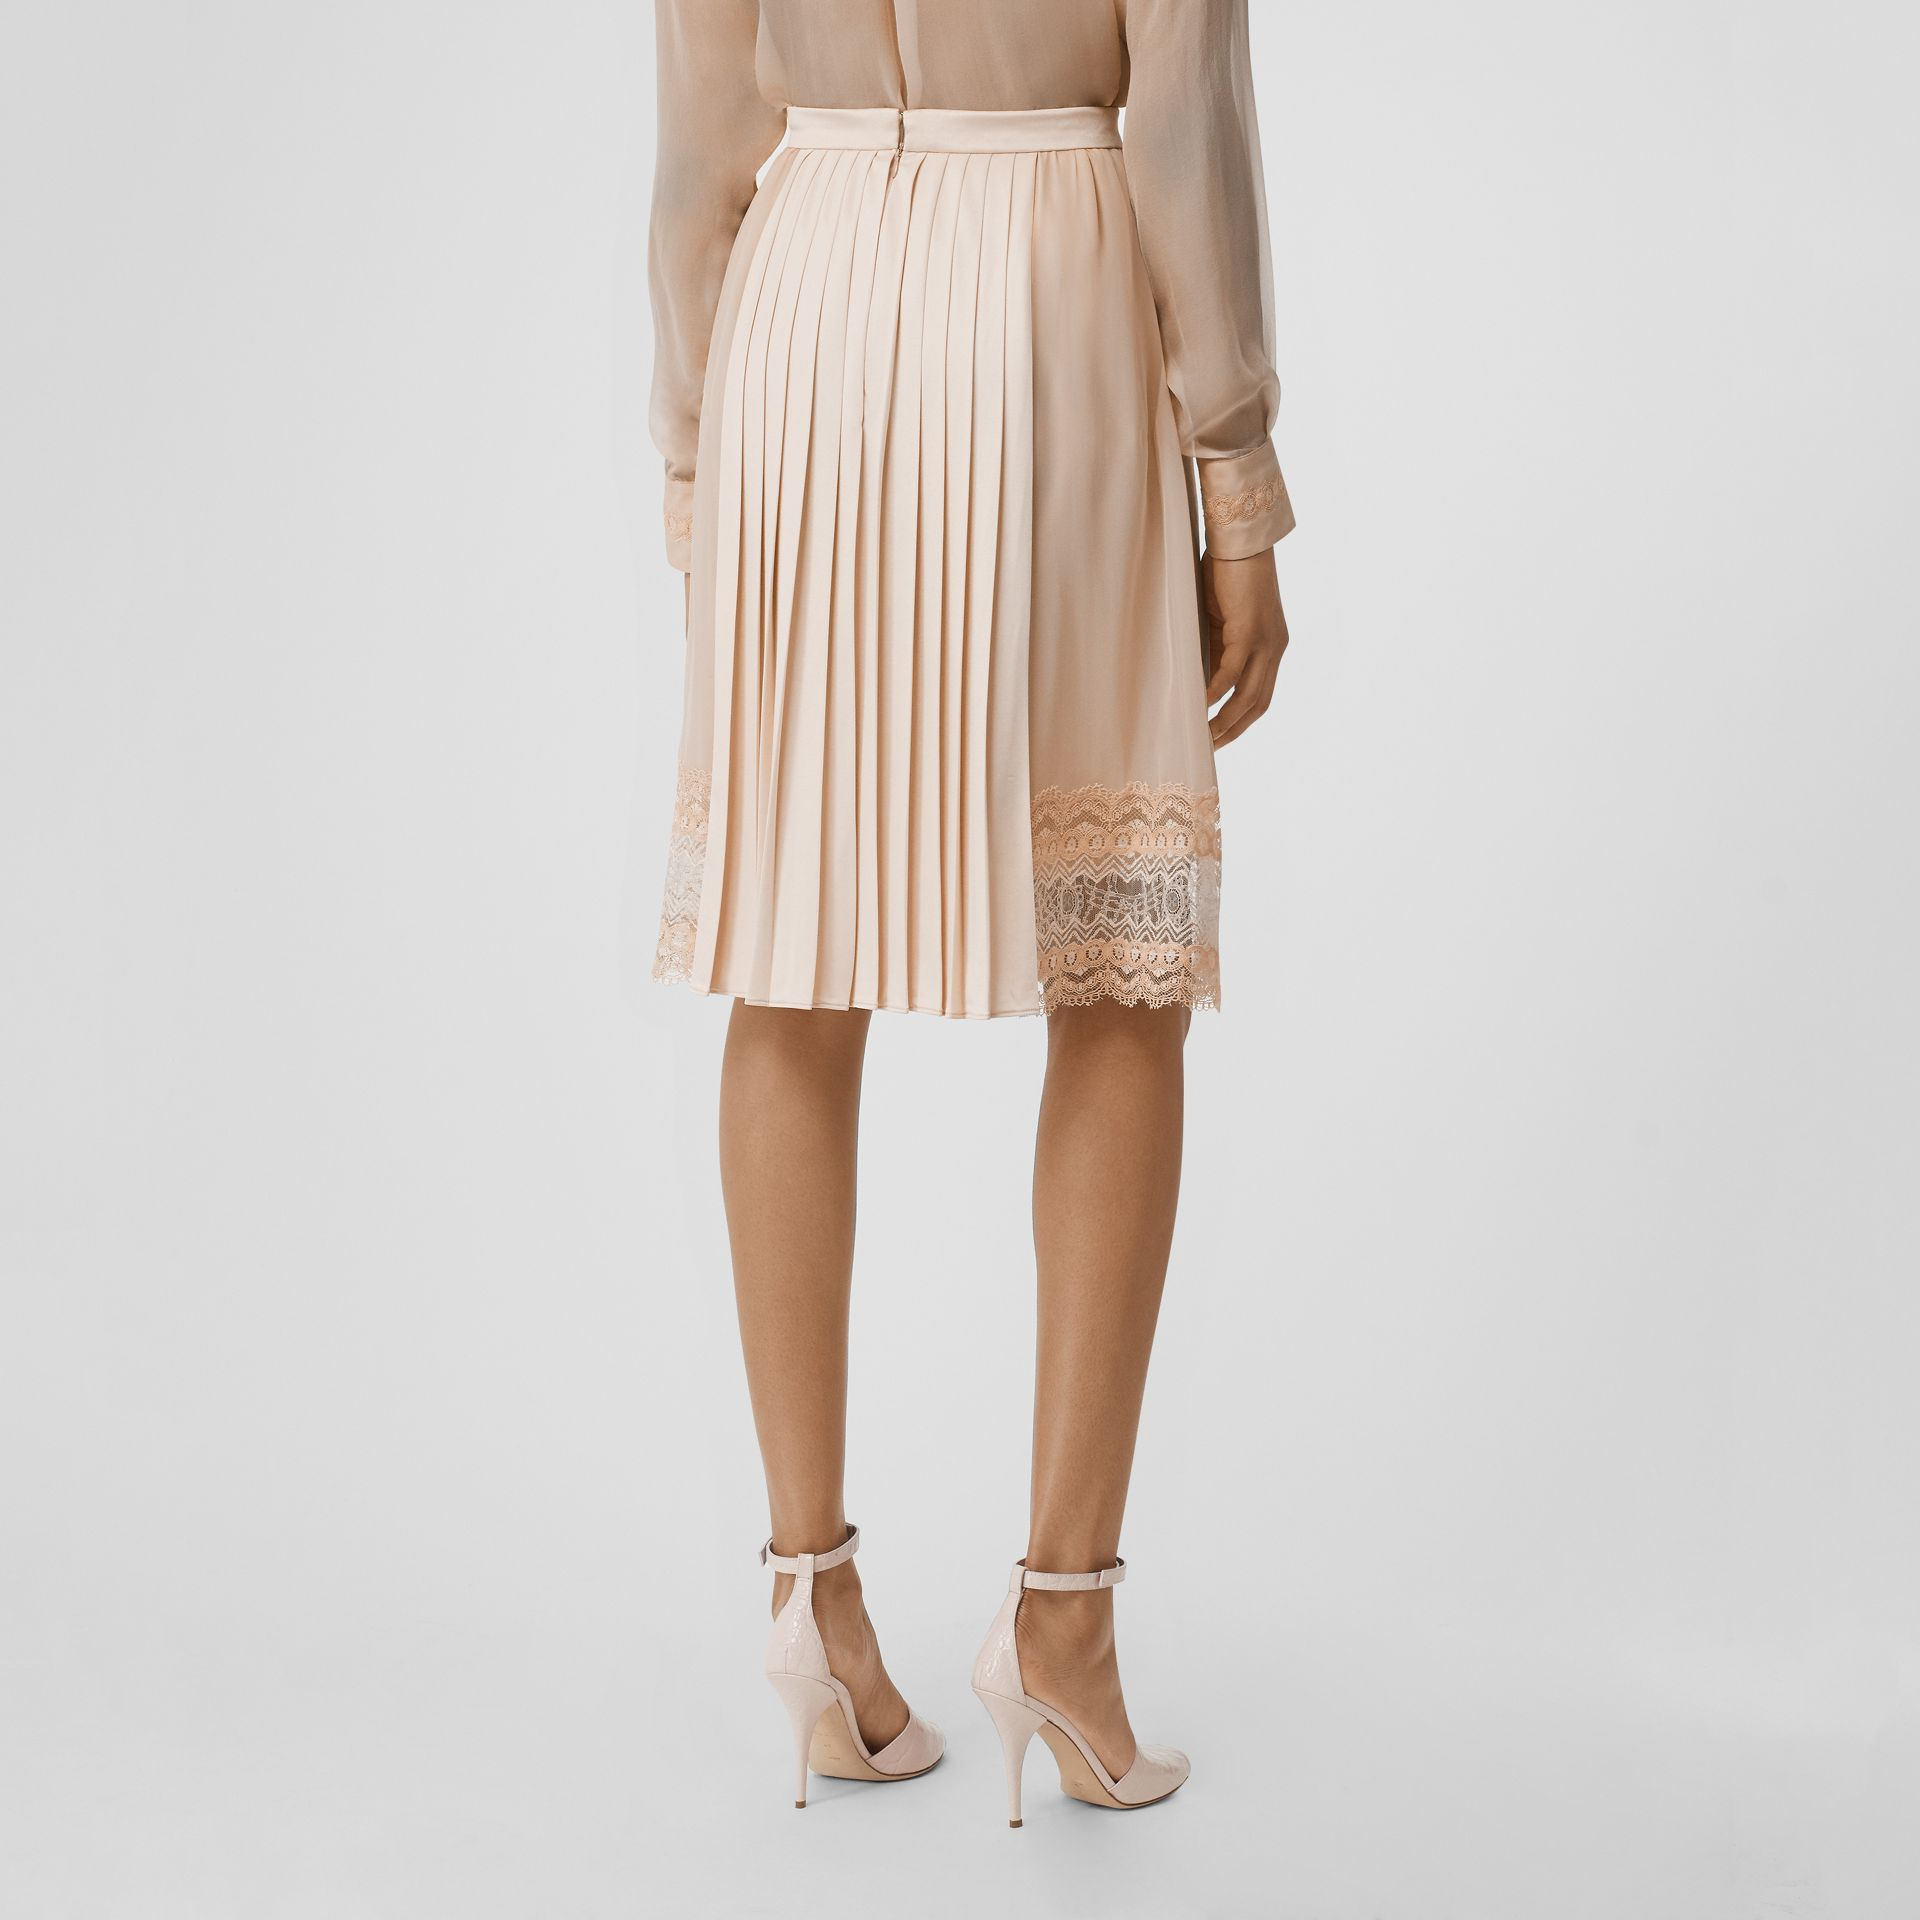 Lace Detail Silk Panel Pleated Skirt in Soft Peach - Women | Burberry - gallery image 4